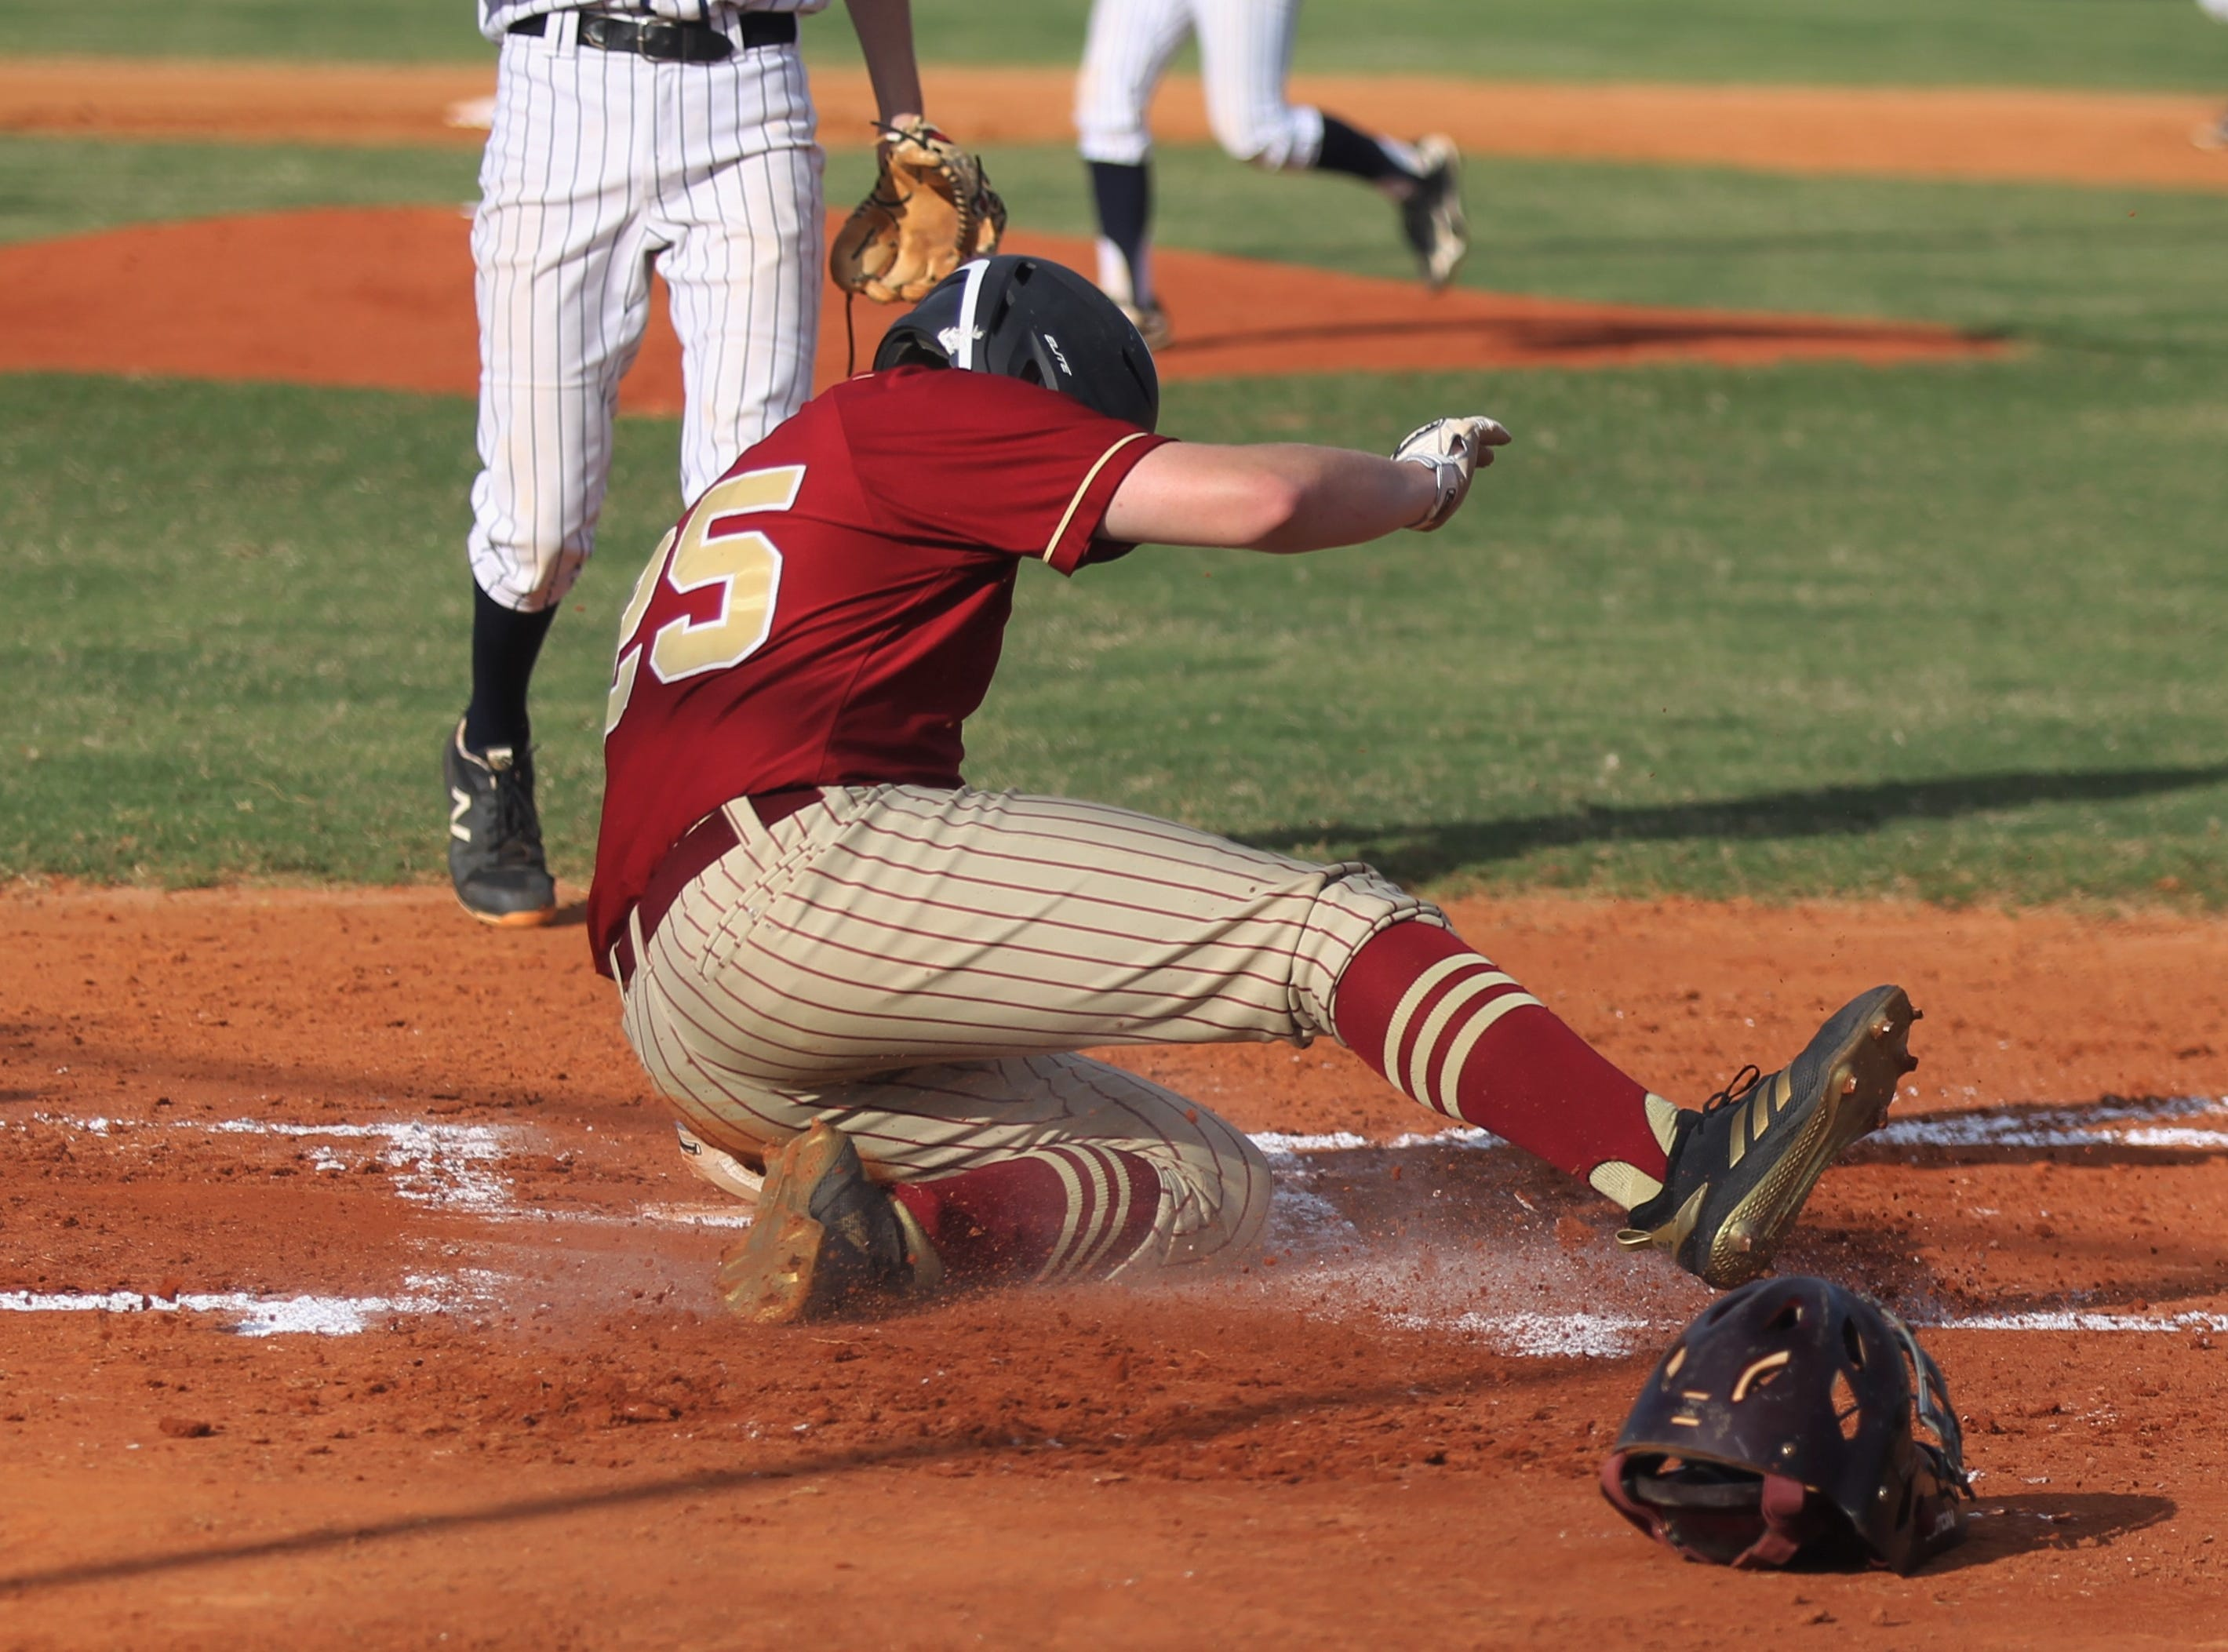 Florida High senior Brady Blackburn slides in for a run as Florida High won 11-3 on the road at St. John Paul II on Tuesday, April 3, 2010.